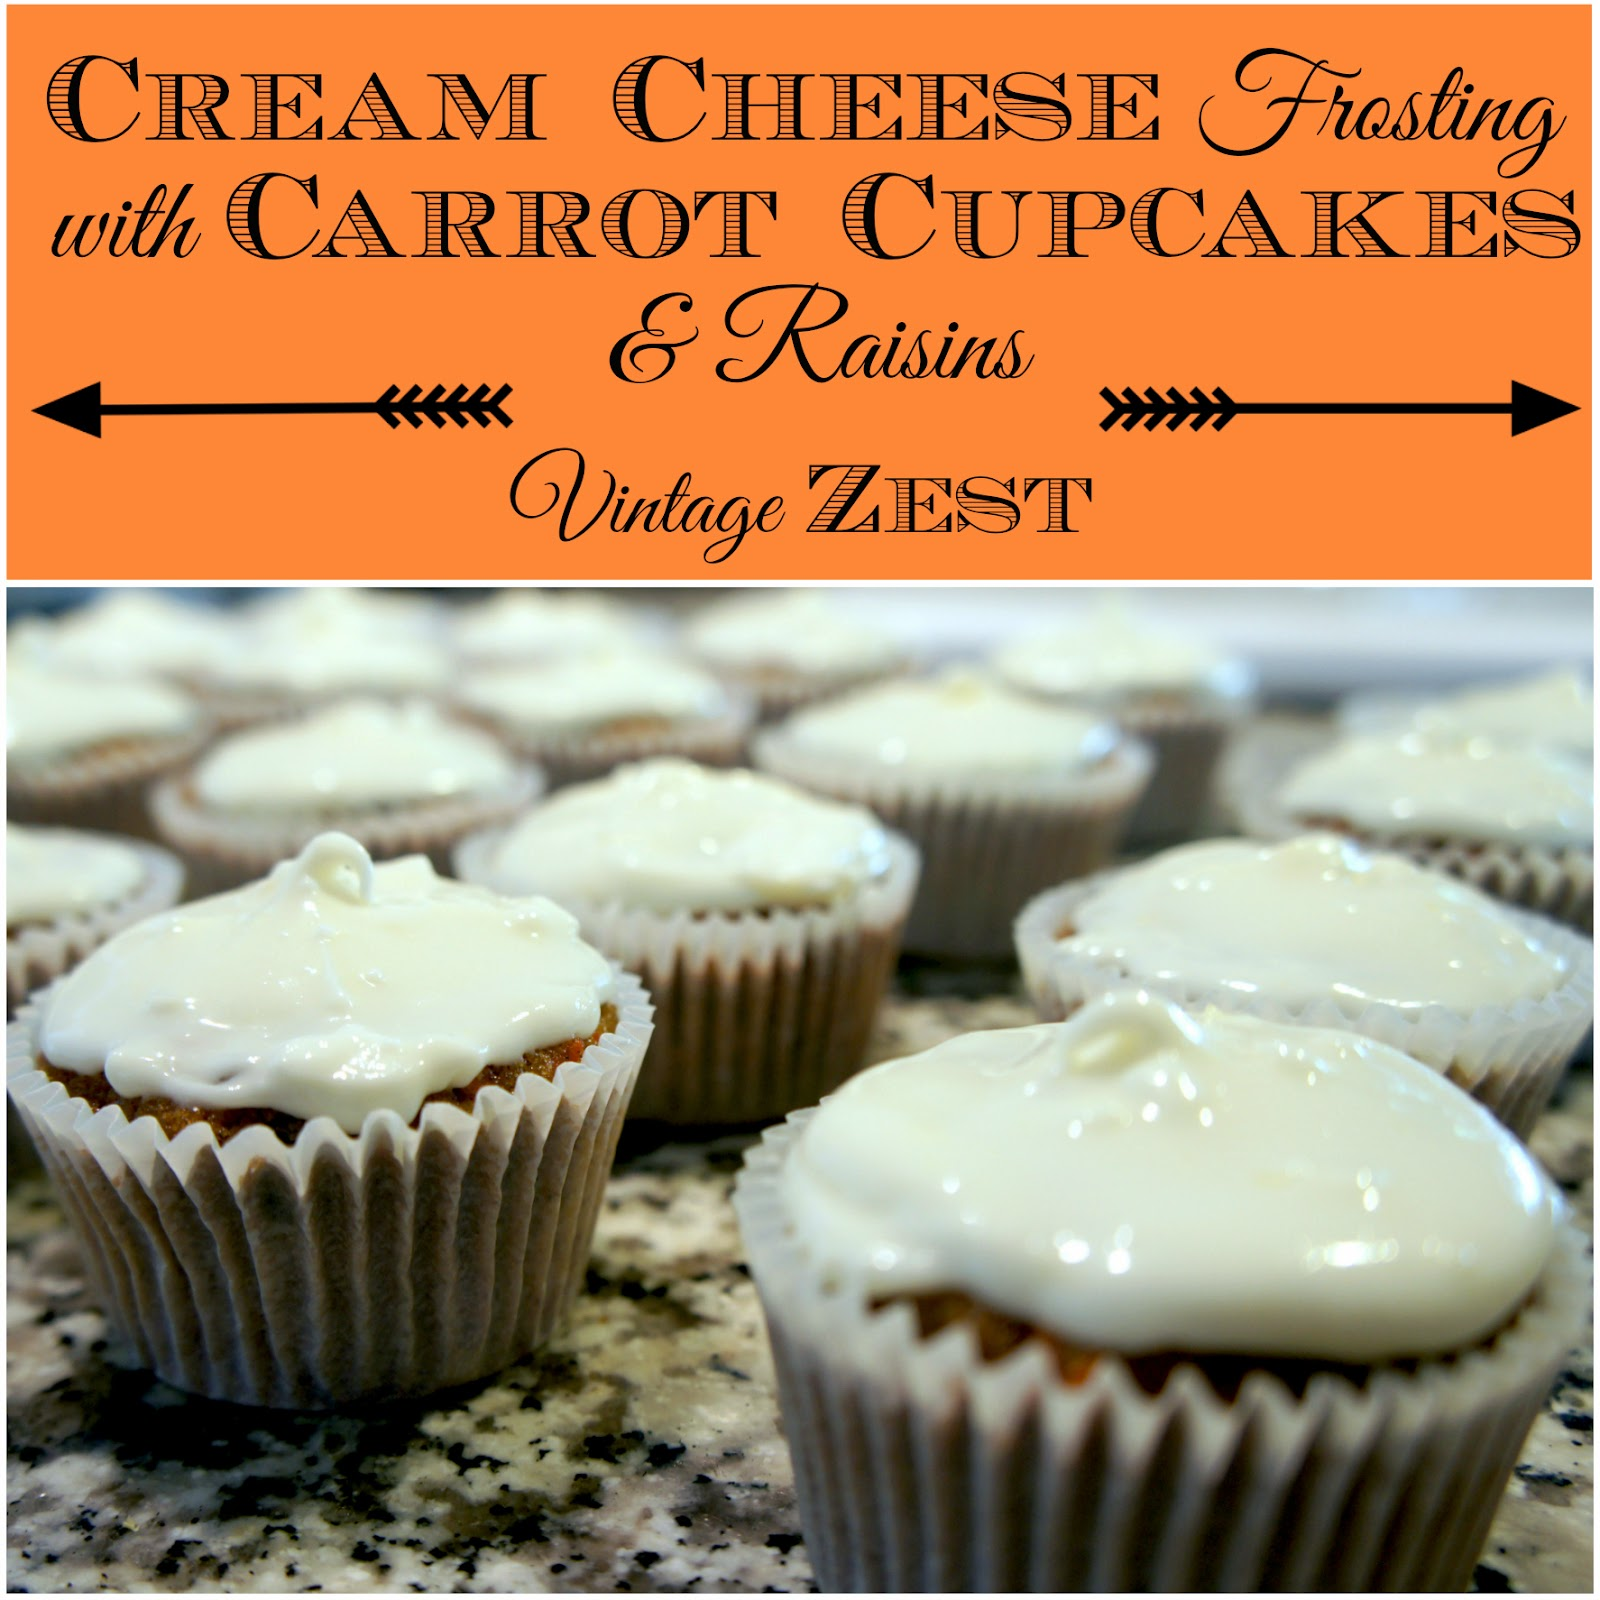 Cream Cheese Frosting with Carrot Cupcakes and Raisins